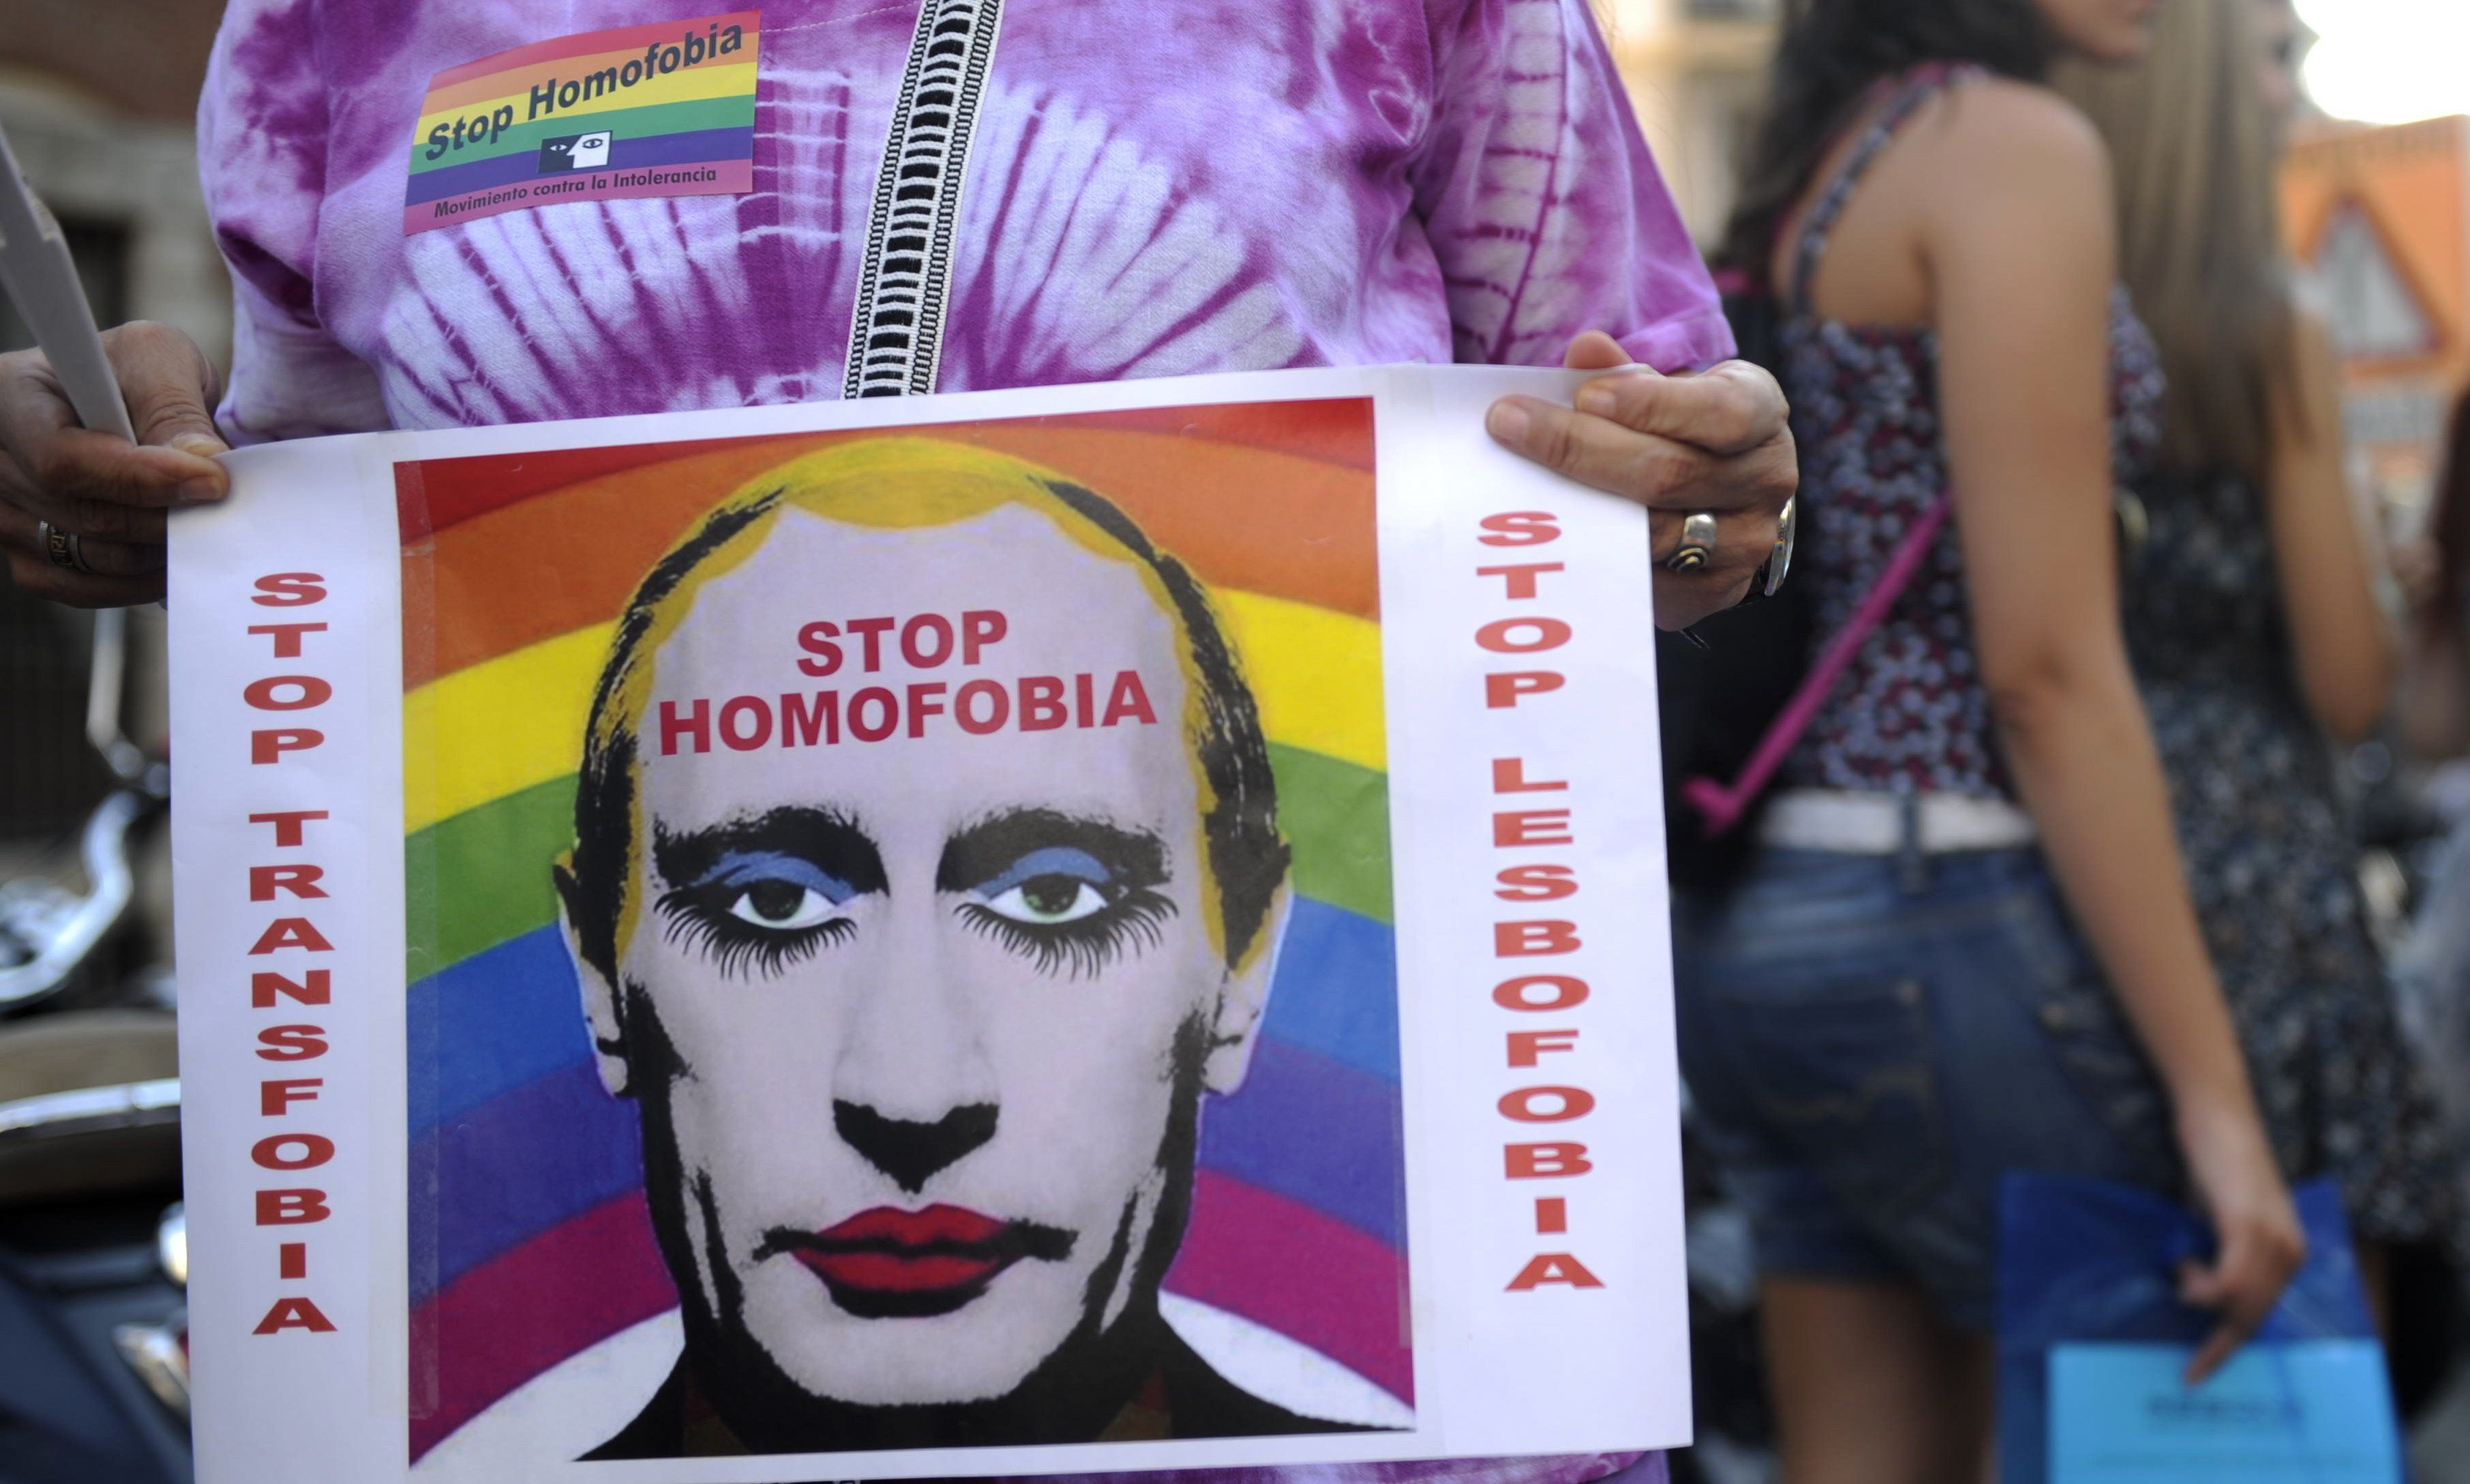 Russia Bans 'Extremist' Image Of Putin In